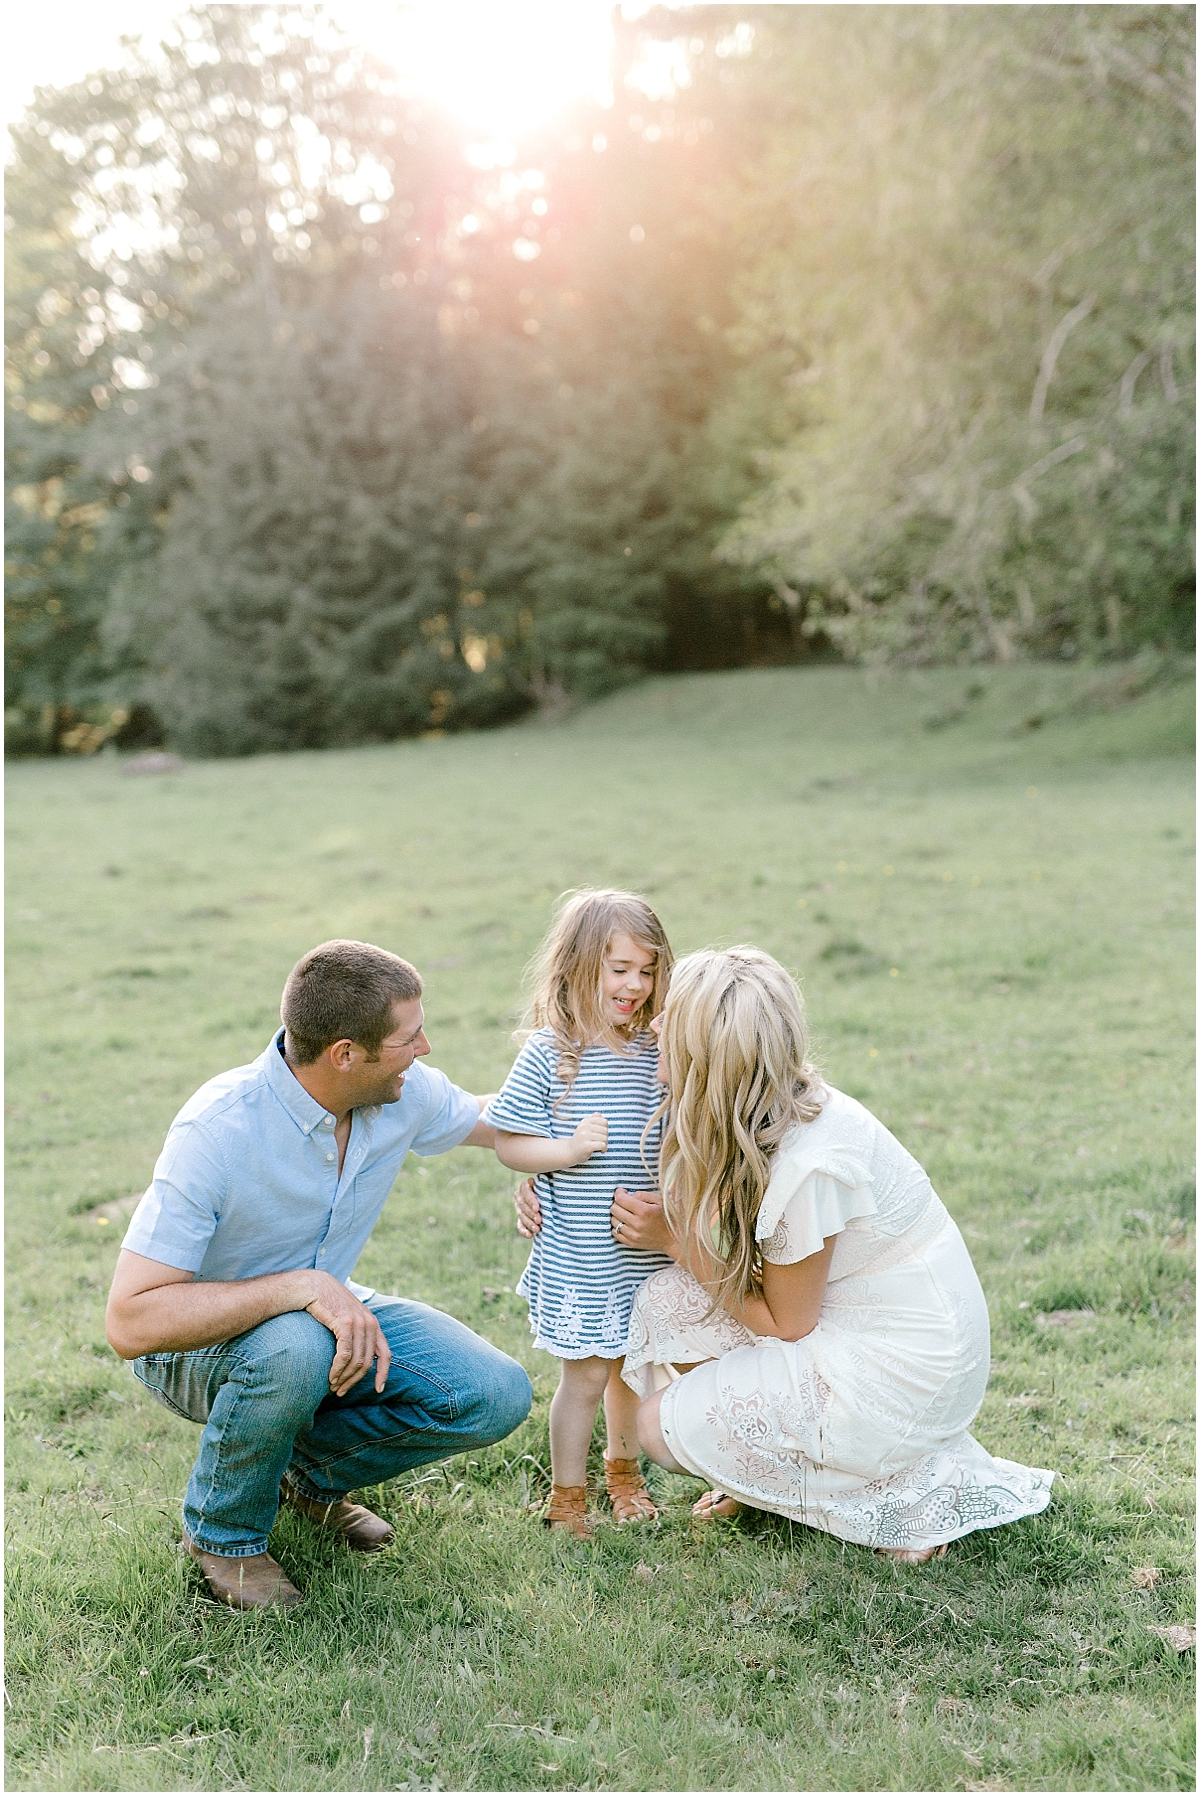 Emma Rose Company Family Pictures, What to Wear to Family Portraits, Lora Grady Photography, Seattle Portrait and Wedding Photographer, Outdoor Family Session, Anthropologie White Farm Dress19.jpg